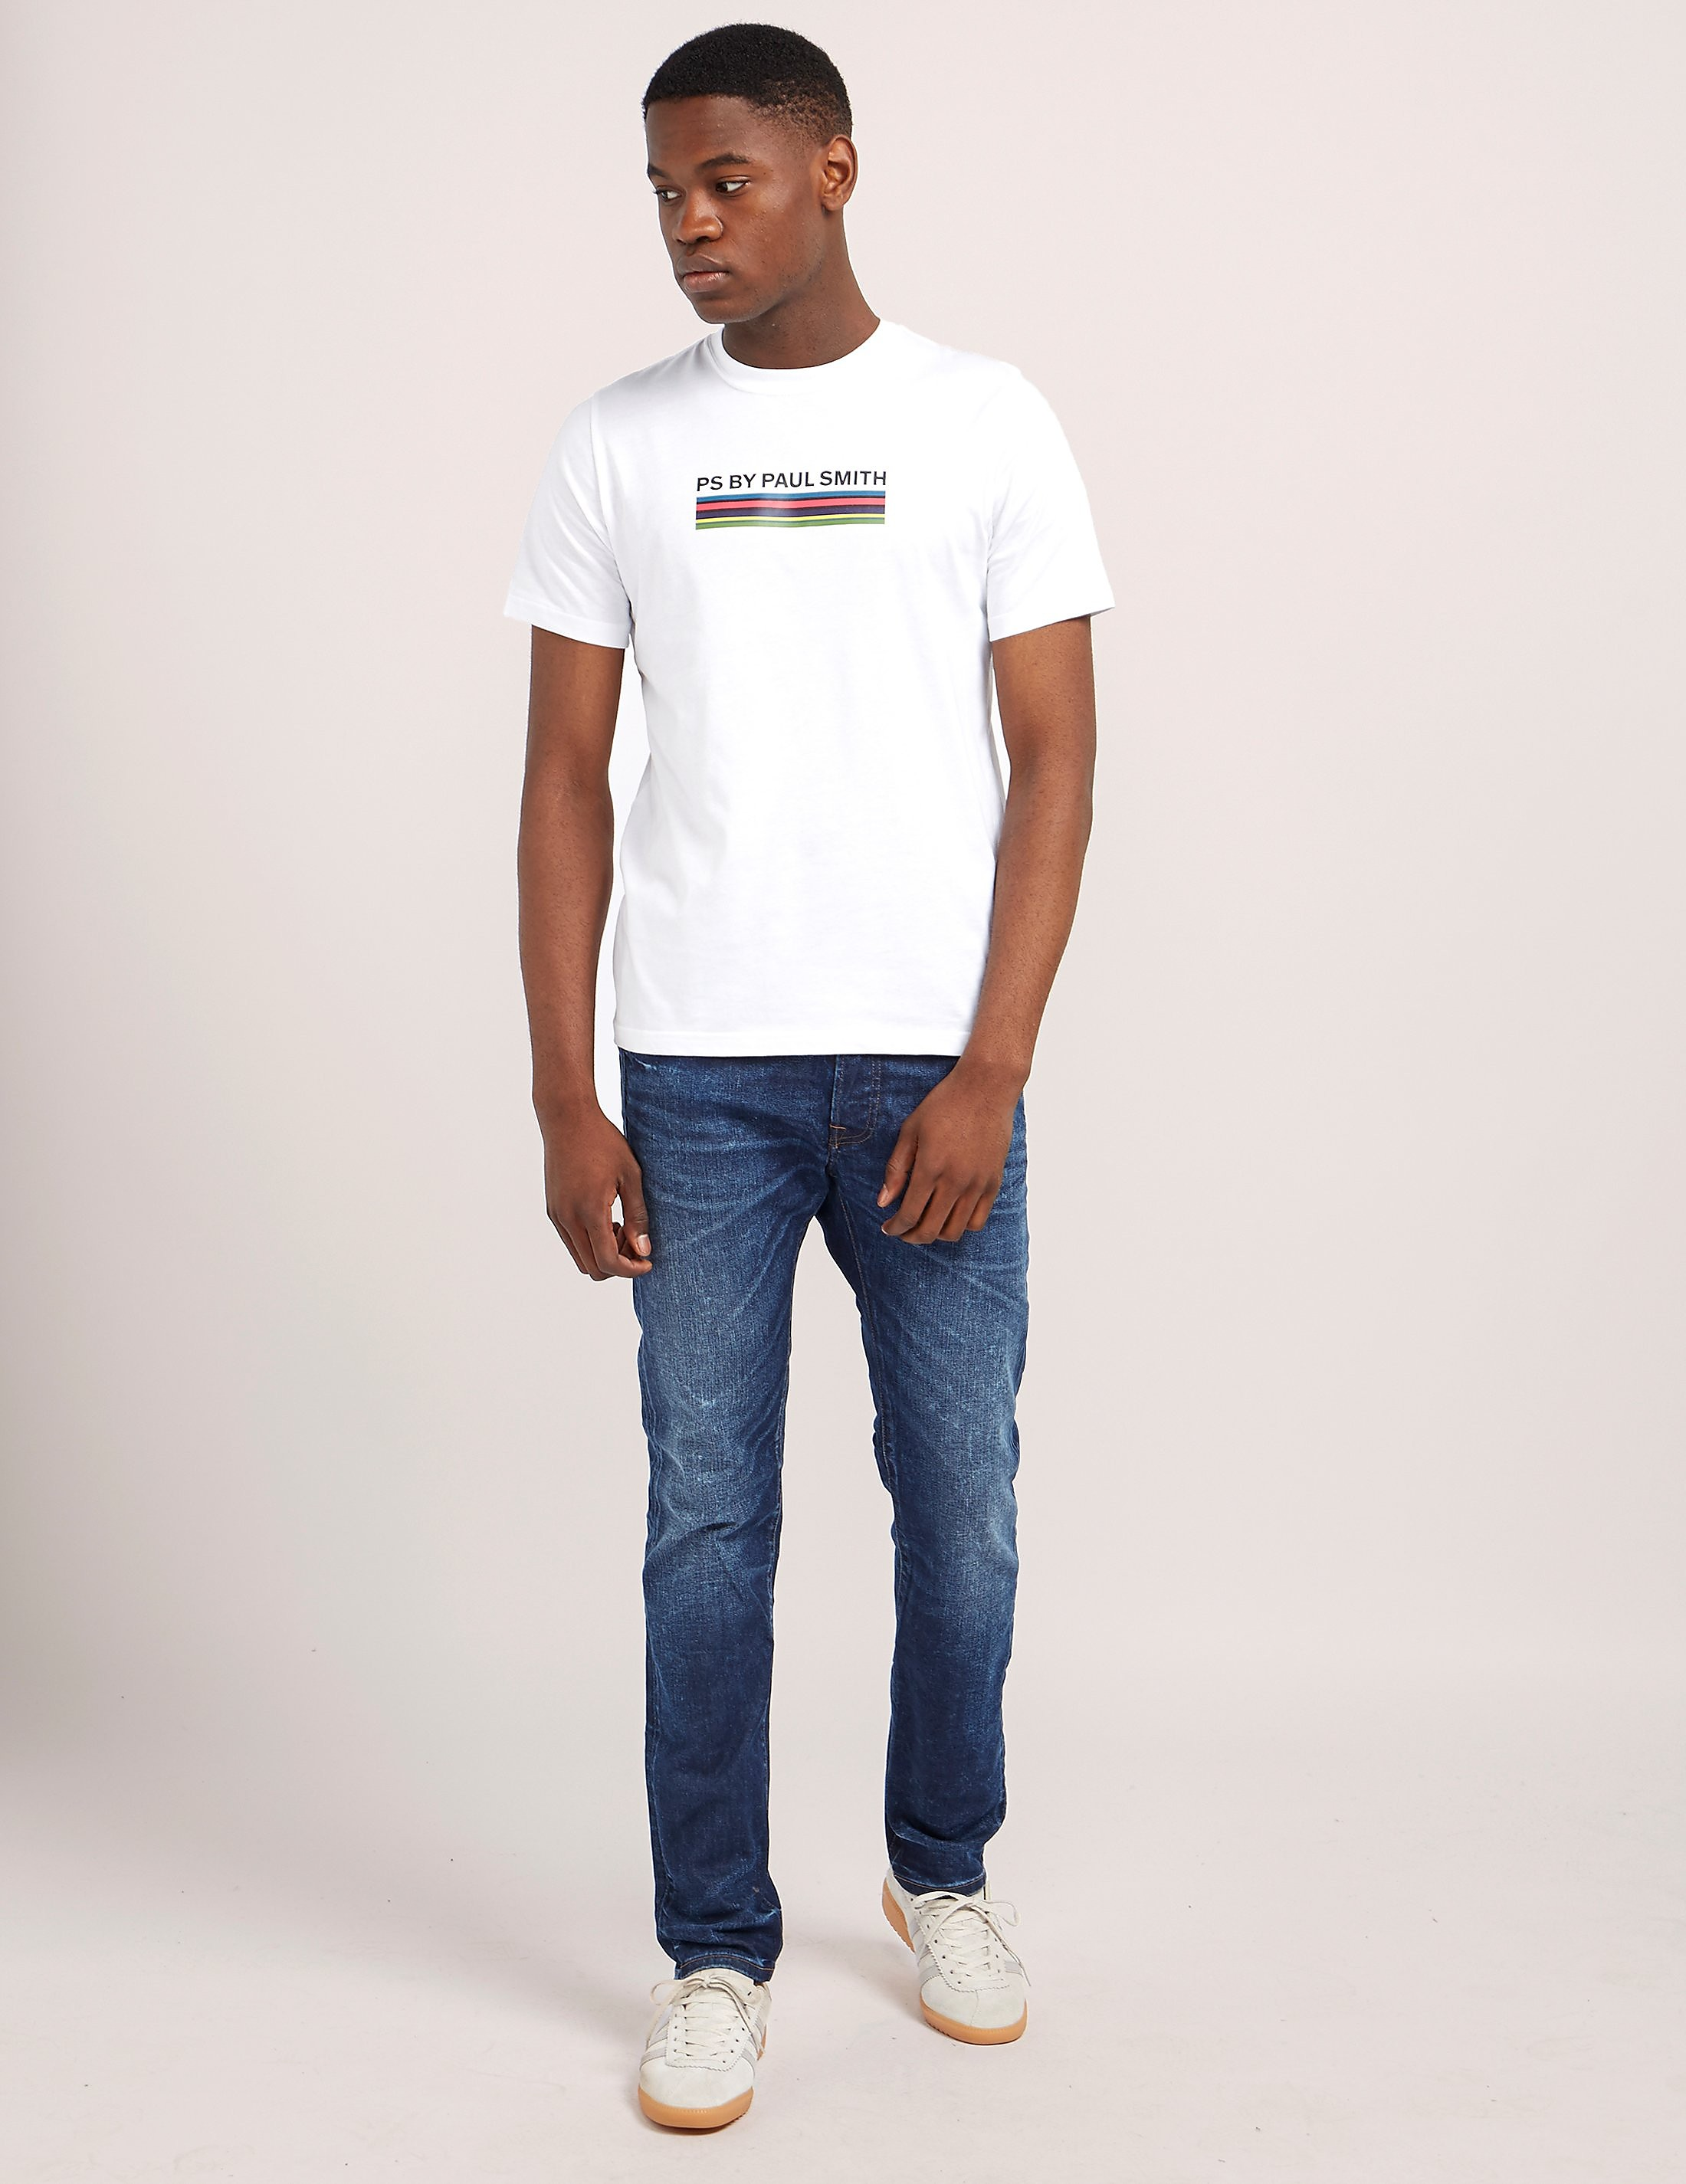 Paul Smith Stripe Print Short Sleeve T-Shirt